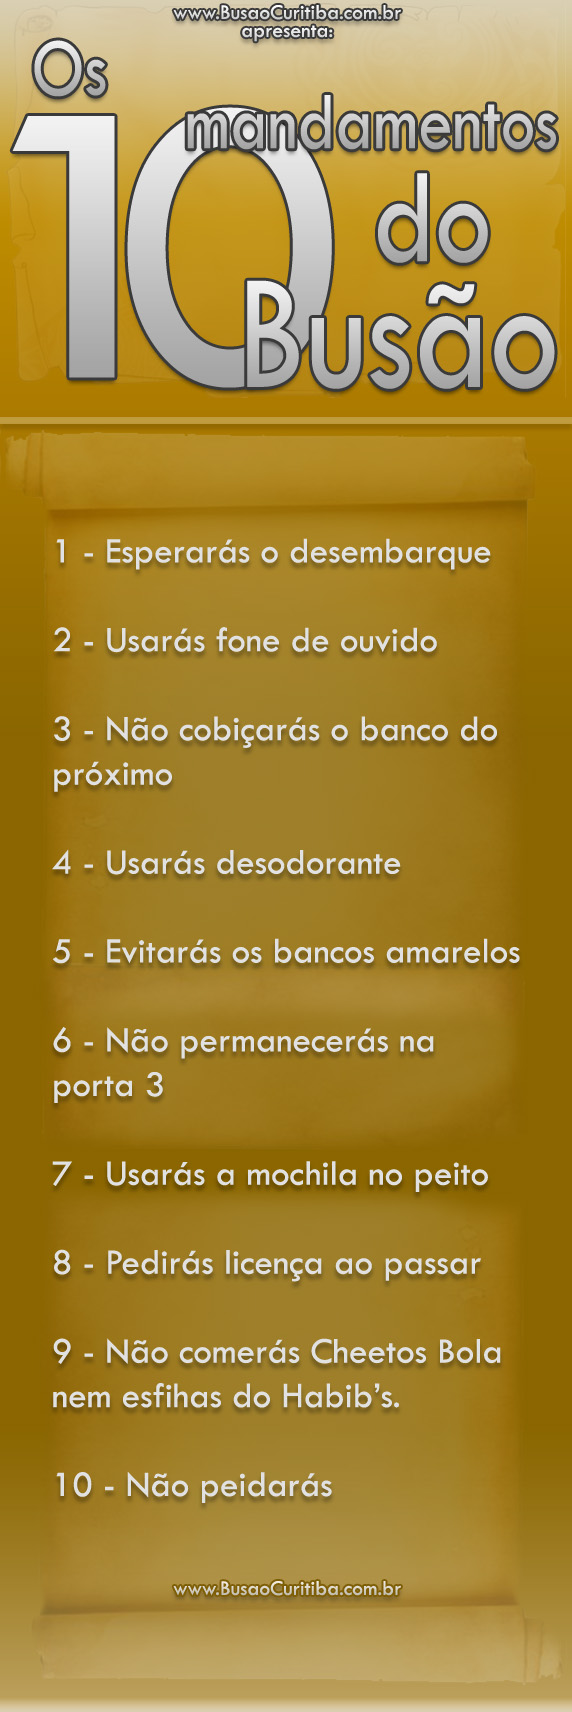 10 mandamentos do busão